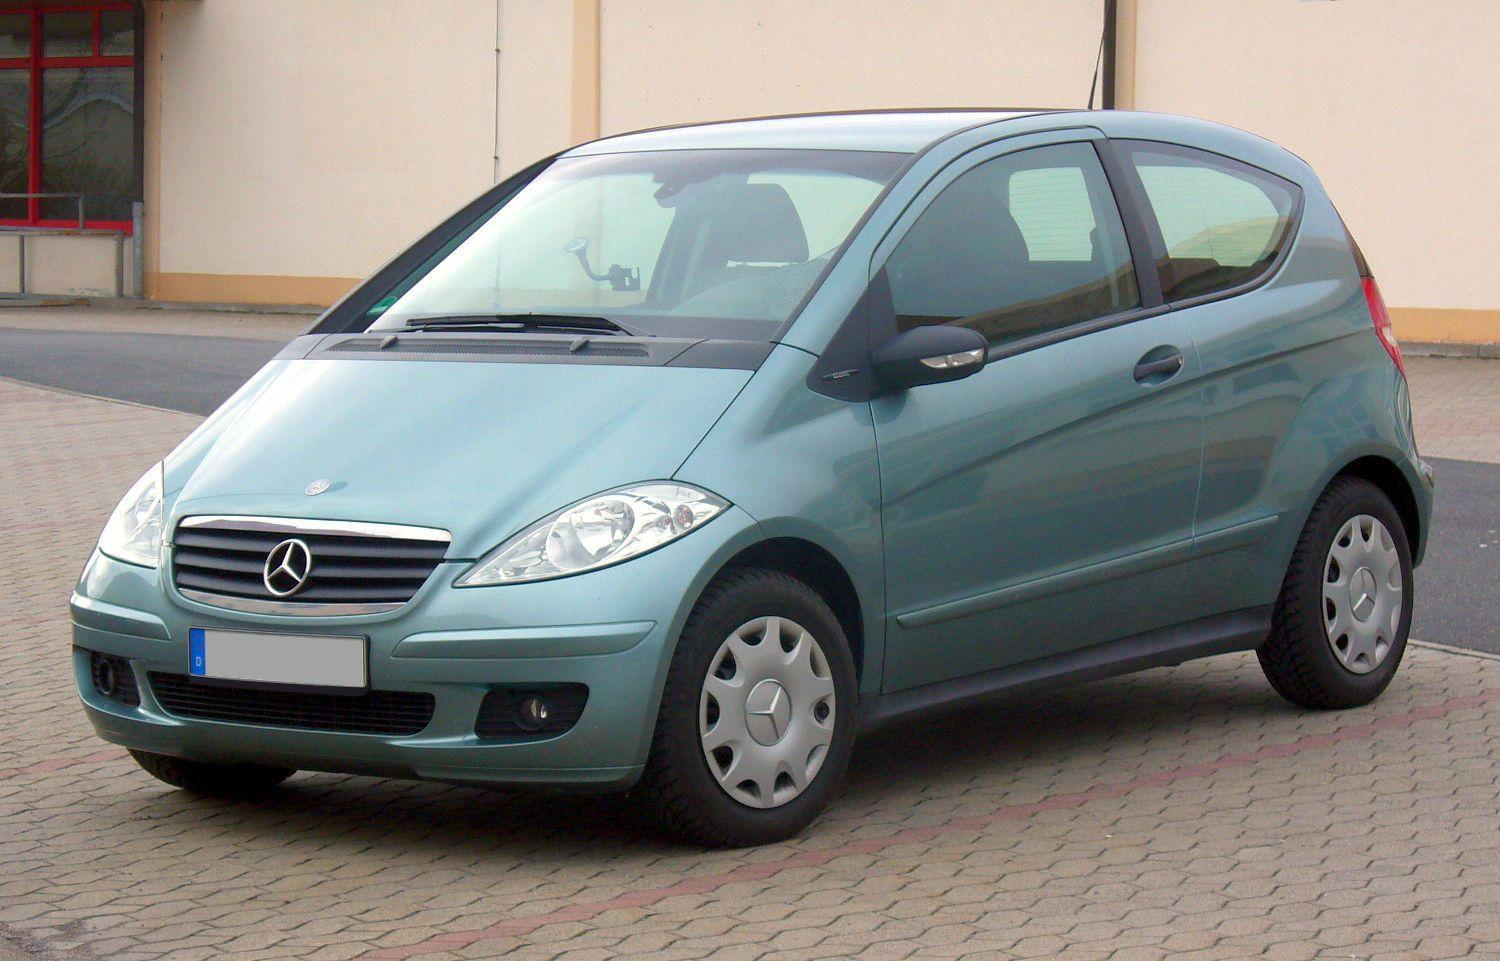 Mercedes-benz a150 photo - 2